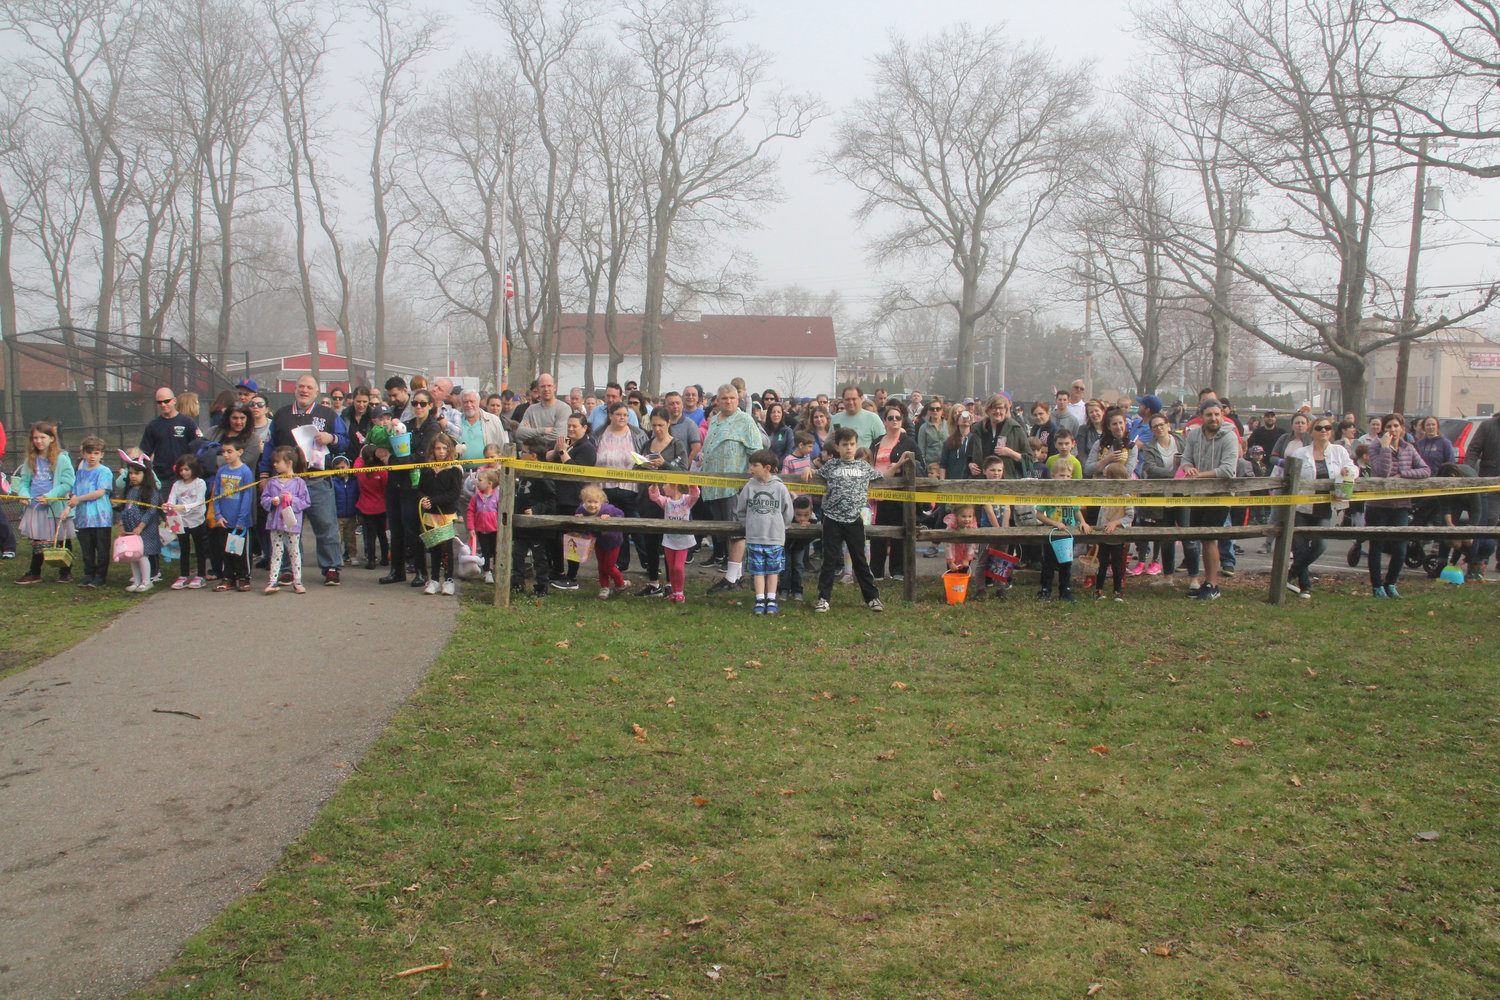 520 children registered for the Egg Hunt; their parents put the crowd at more than 1,000, as they waited for the hunt to start.